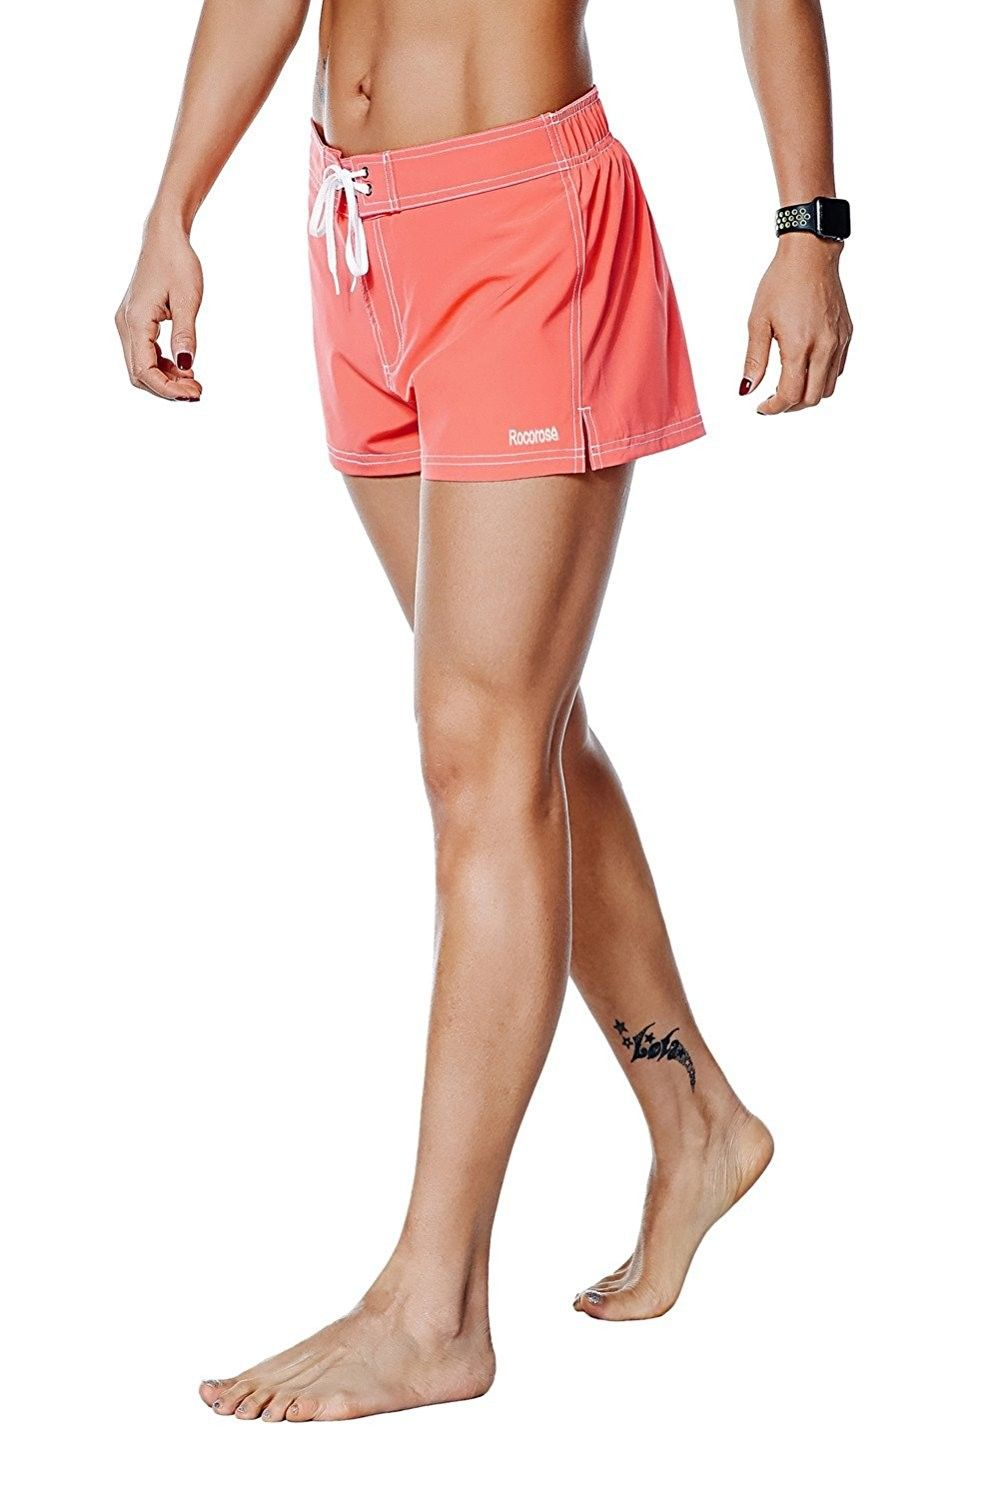 Rocorose Womens Boardshorts Water Sports Quick Dry with Back Pocket